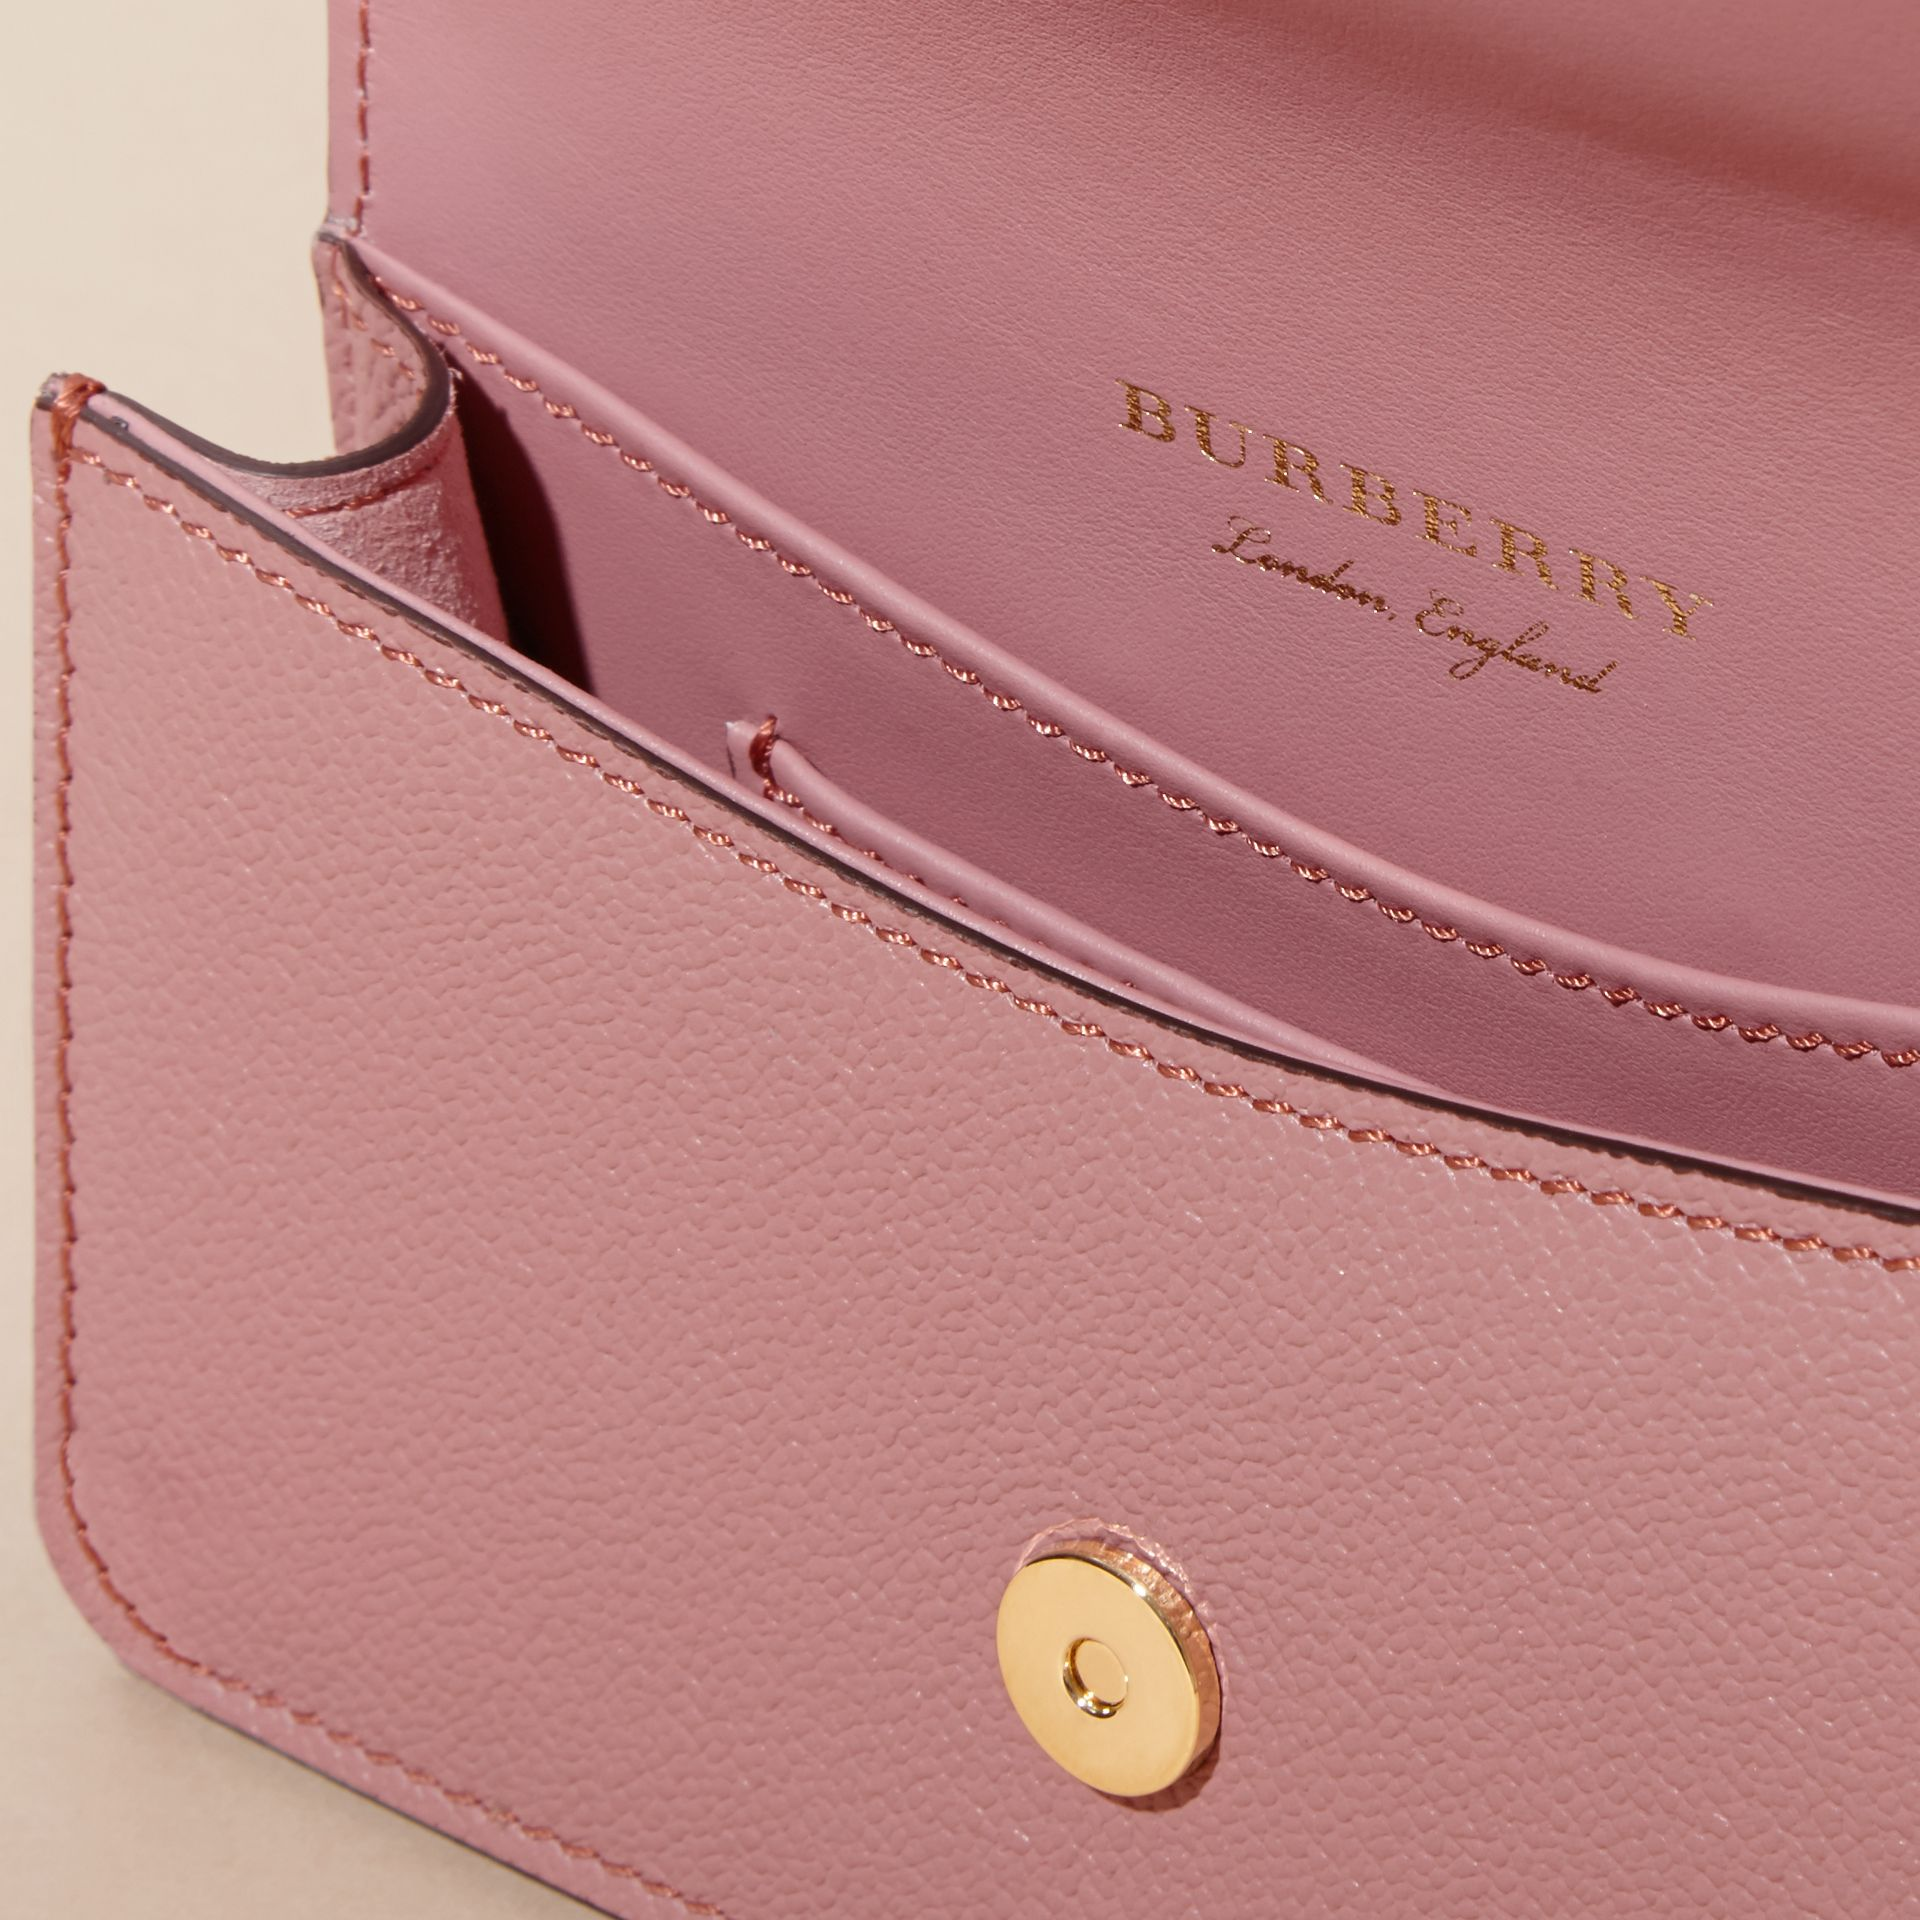 Borsa The Buckle mini in pelle a grana (Rosa Polvere) - Donna | Burberry - immagine della galleria 6